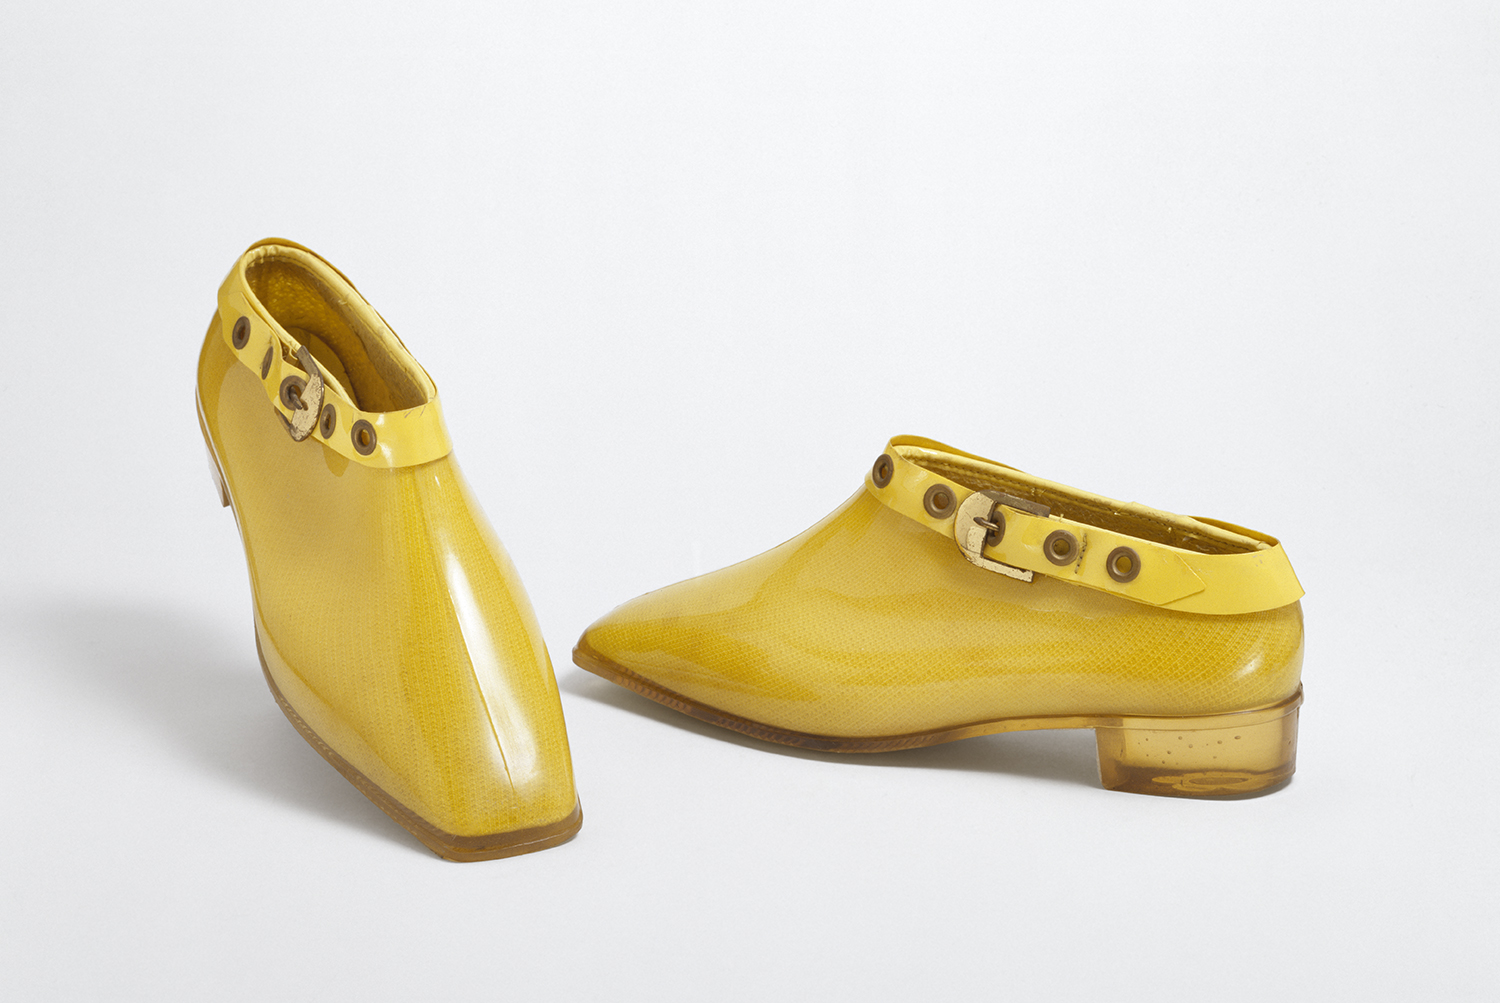 Yellow ankle boots in Polyvinyl chloride (PVC) lined with cotton jersey, Mary Quant, 1967, London. Museum no. T.591: 1&2-1992. © Victoria and Albert Museum, London